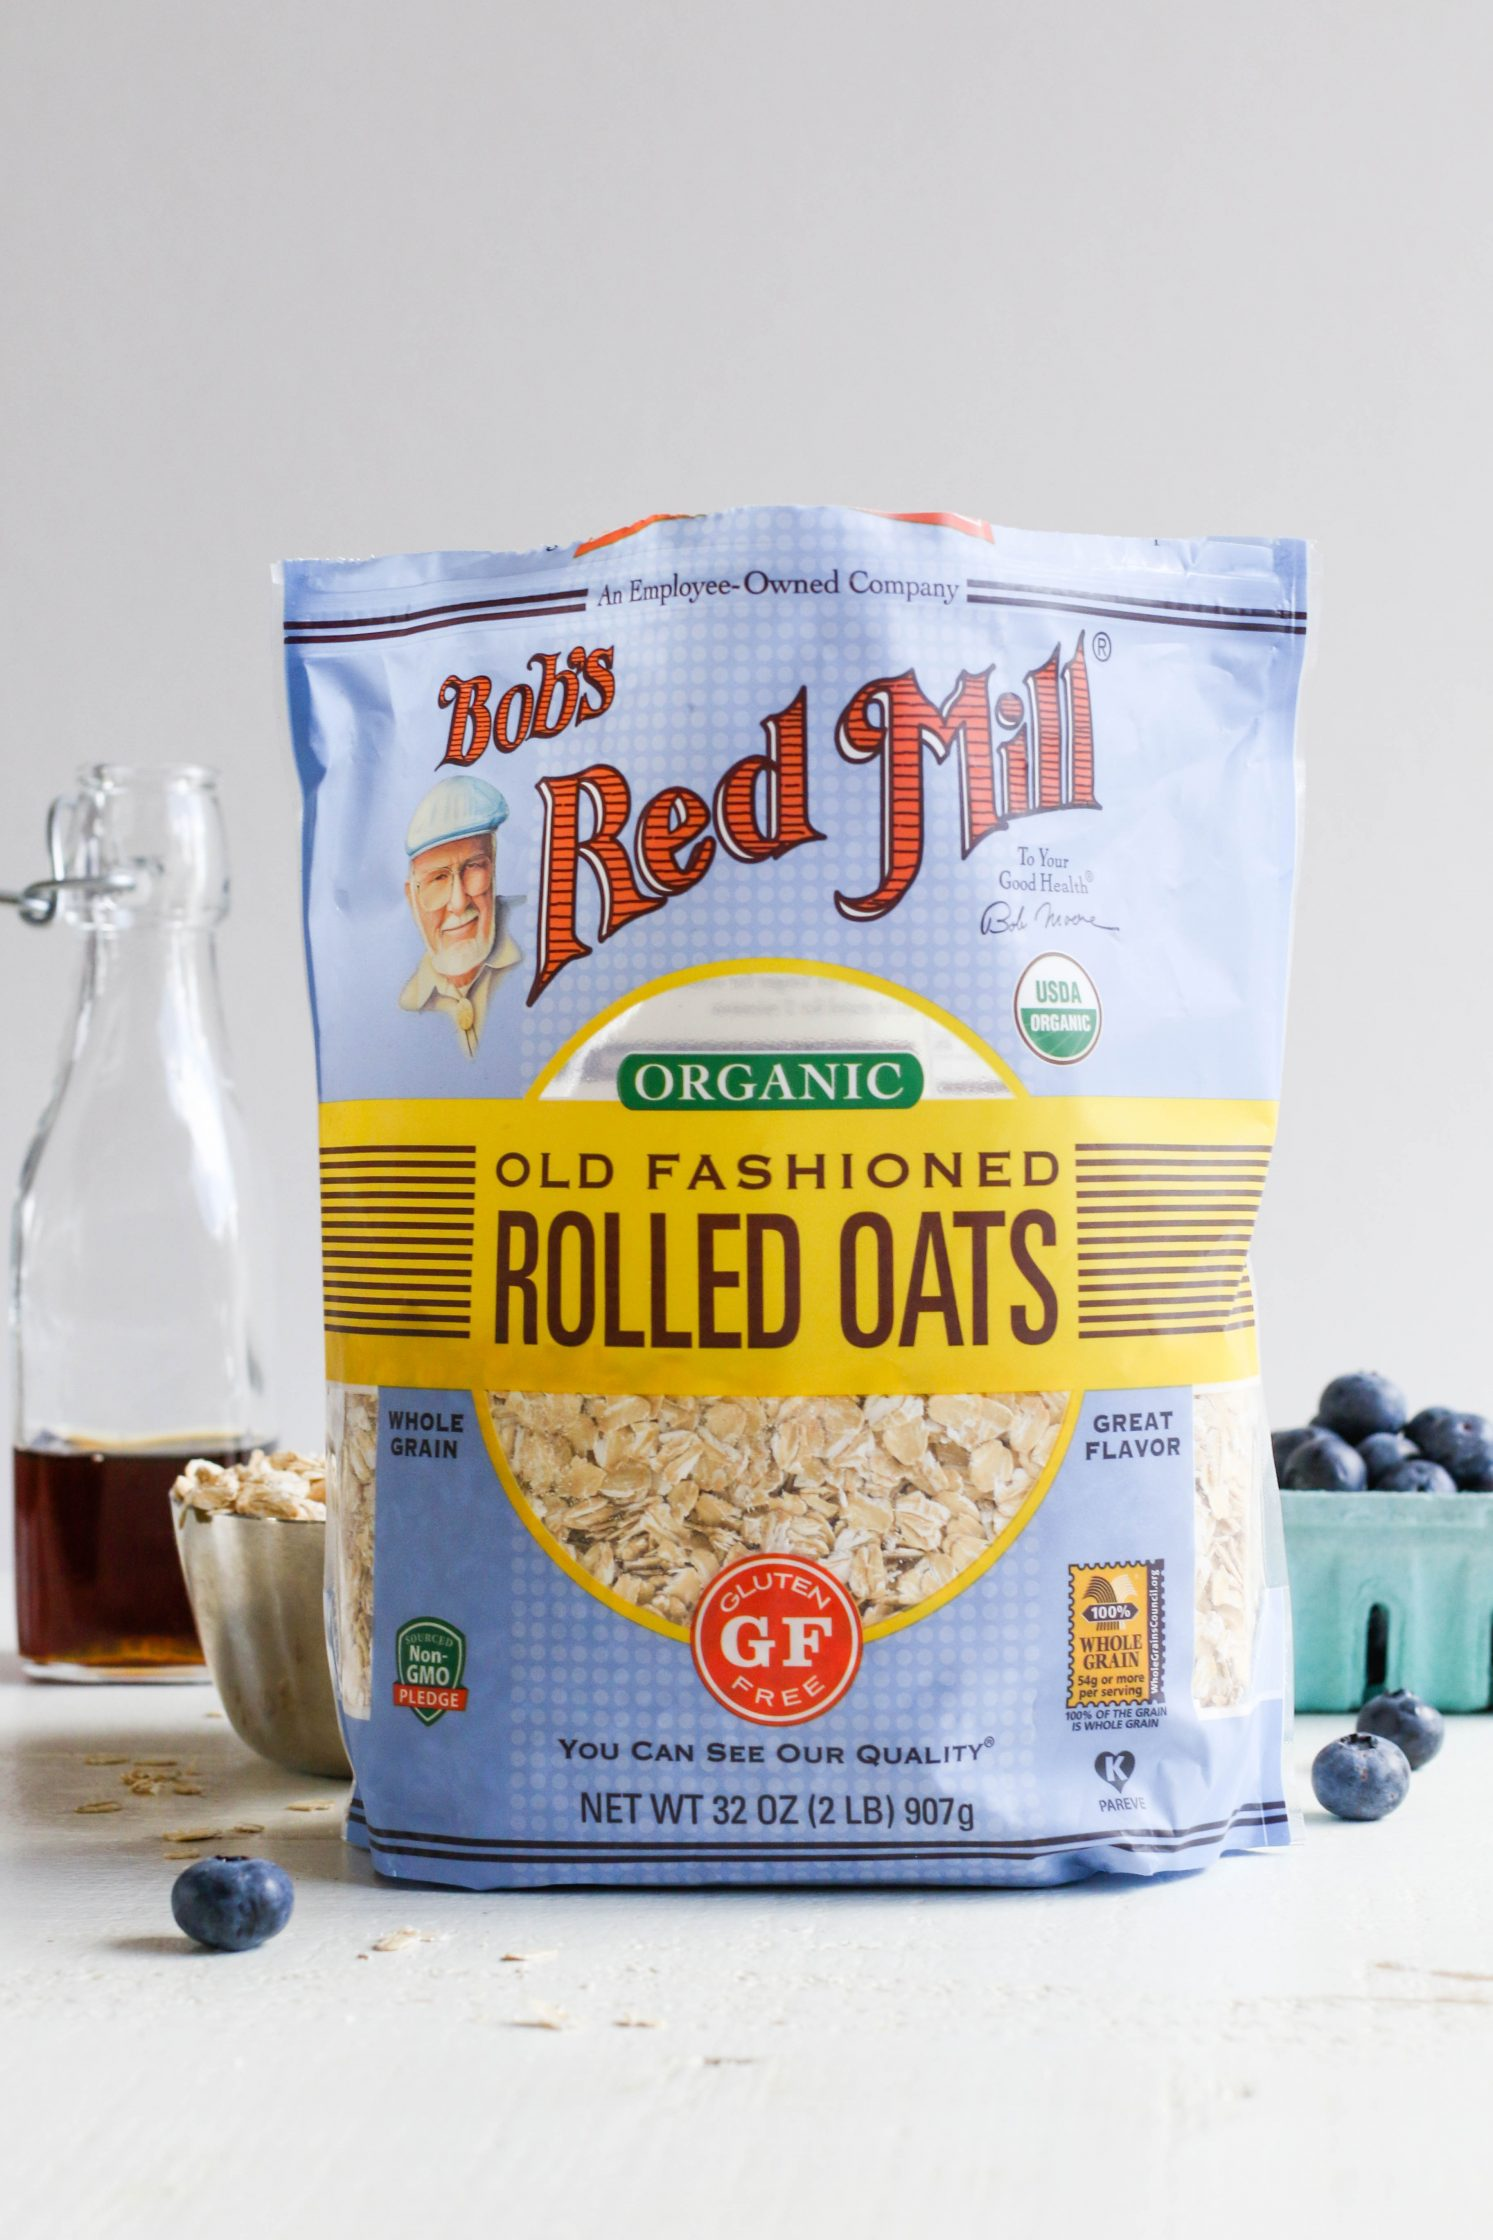 Bob's Red Mill Old-Fashioned Rolled Oats